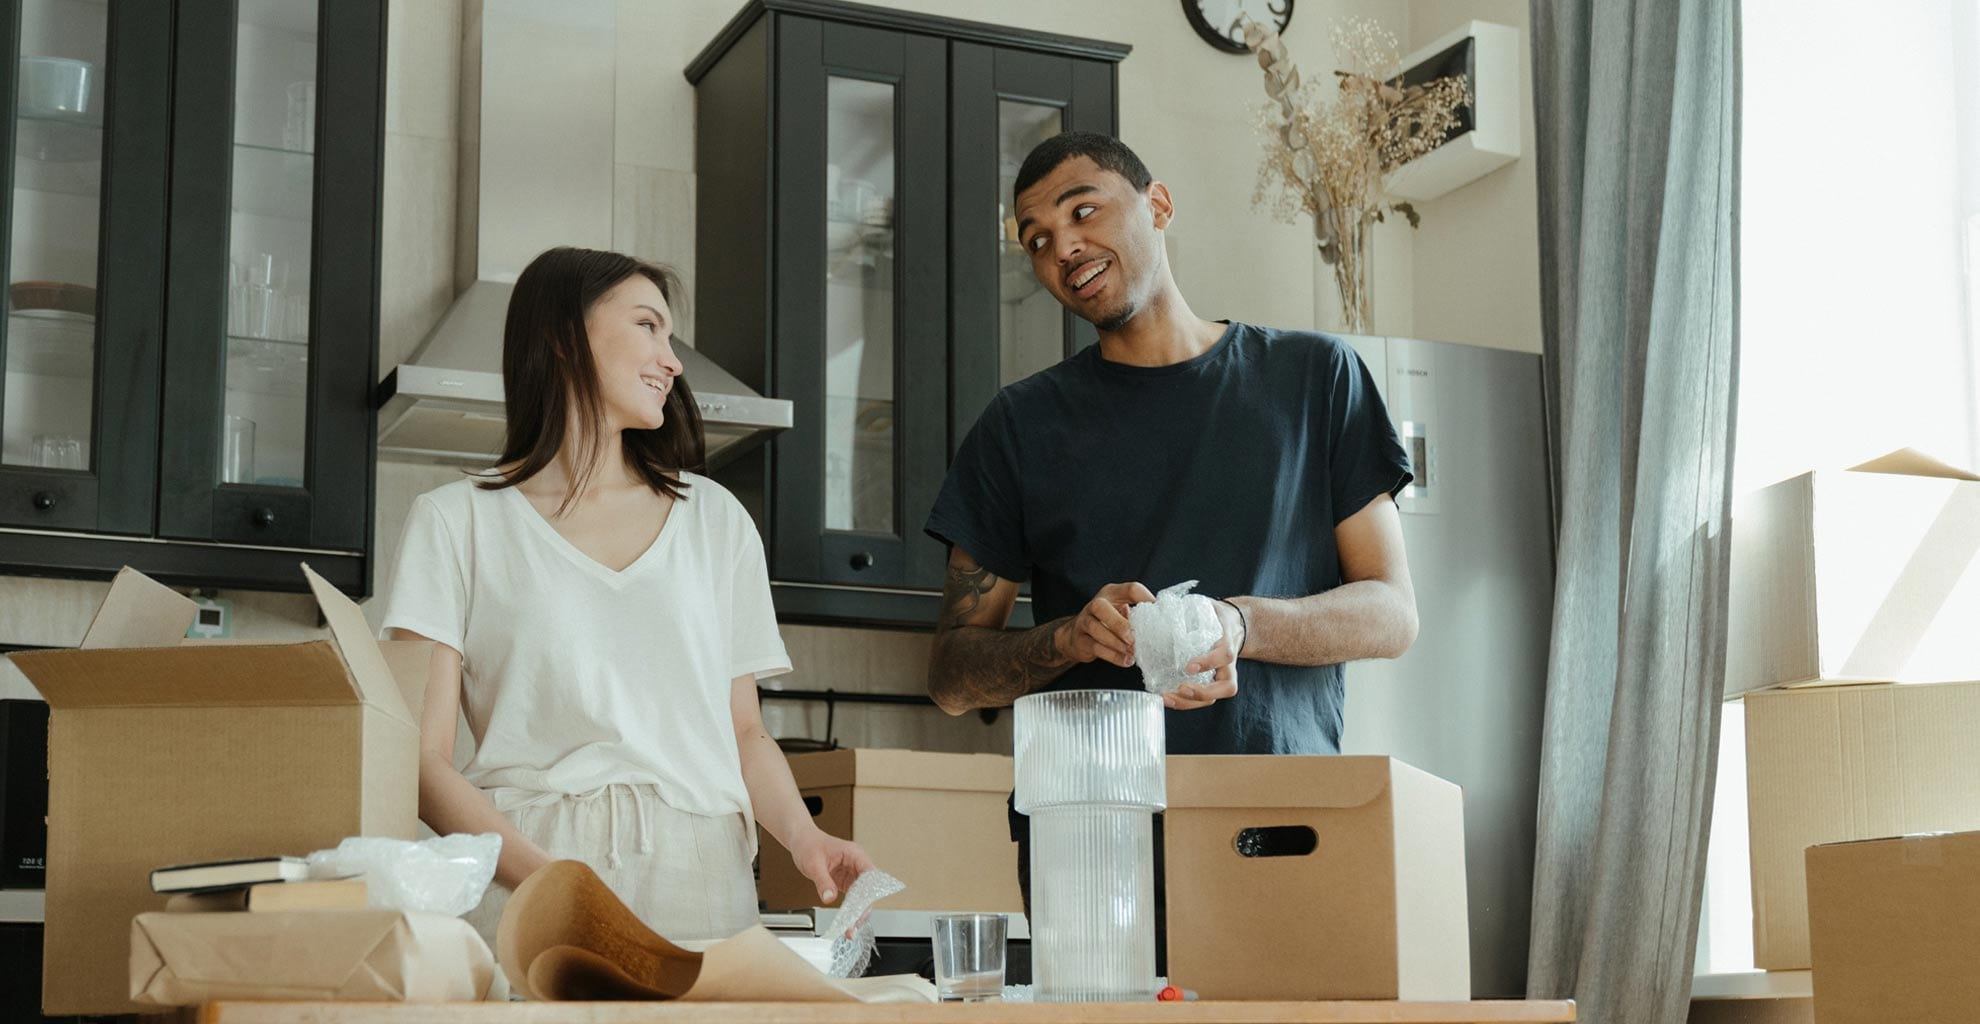 Can I Purchase a Home With No Down Payment?